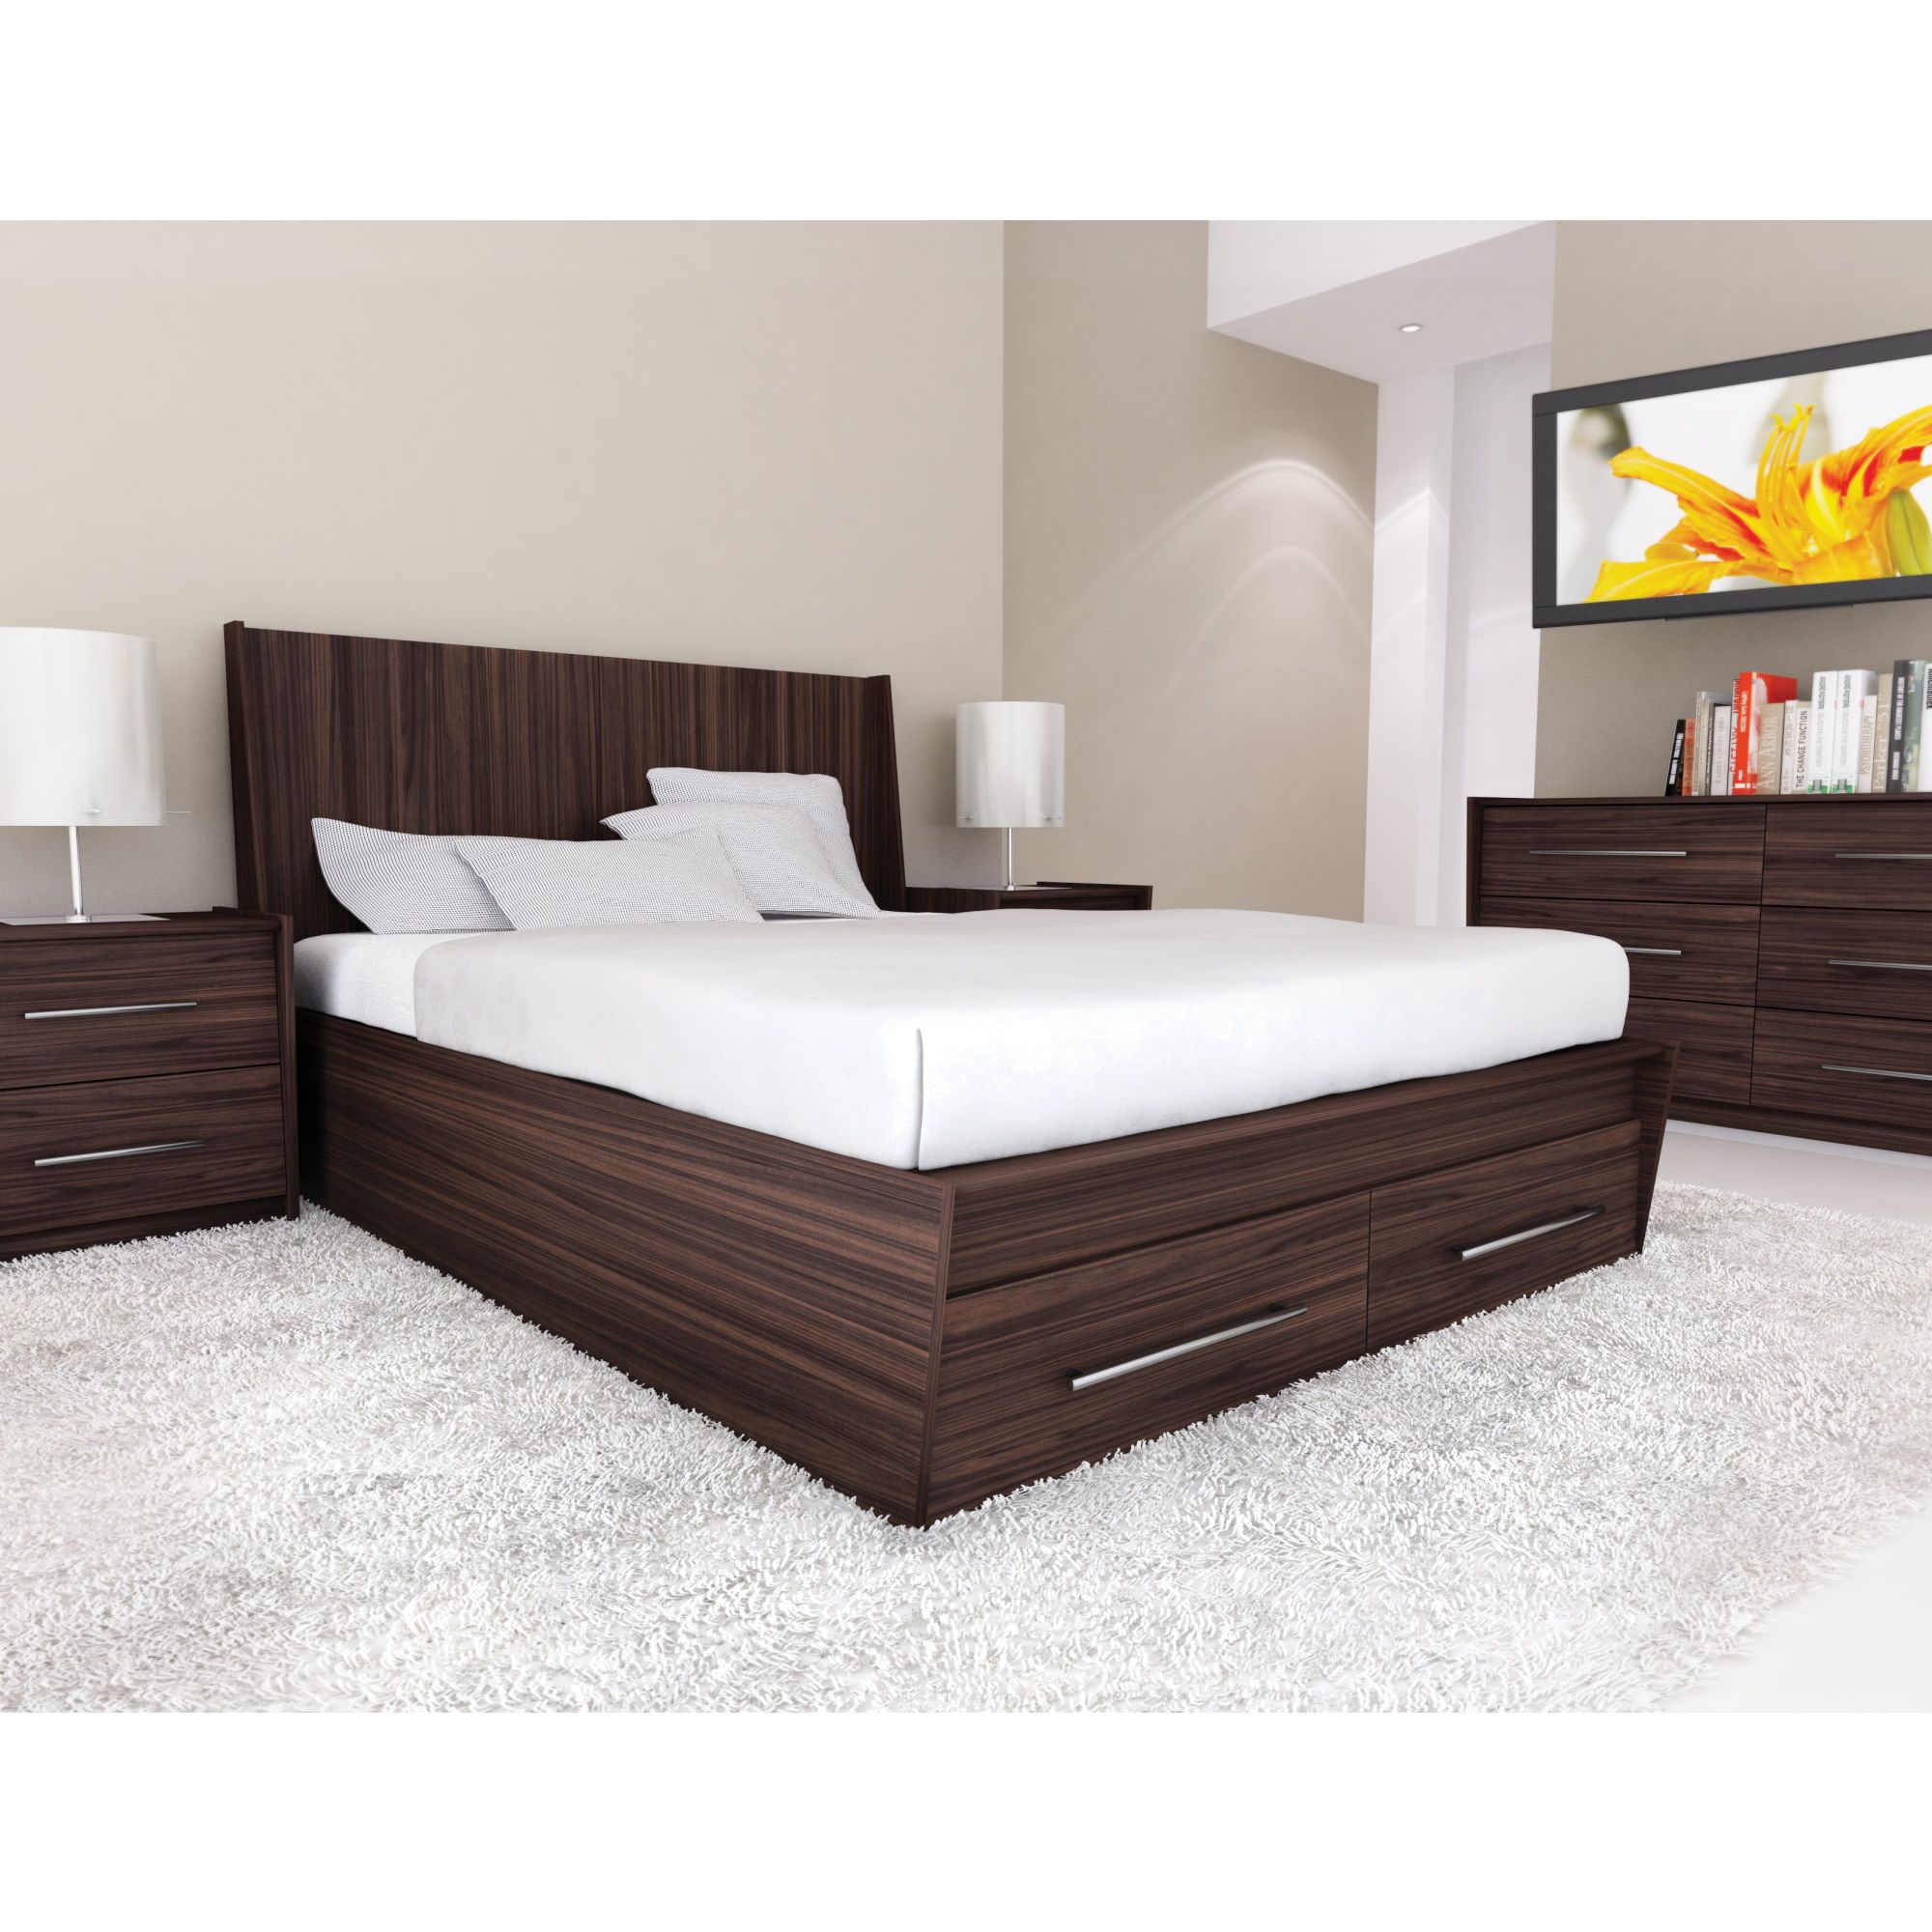 Bed designs for your comfortable bedroom interior design for Bedroom furniture beds